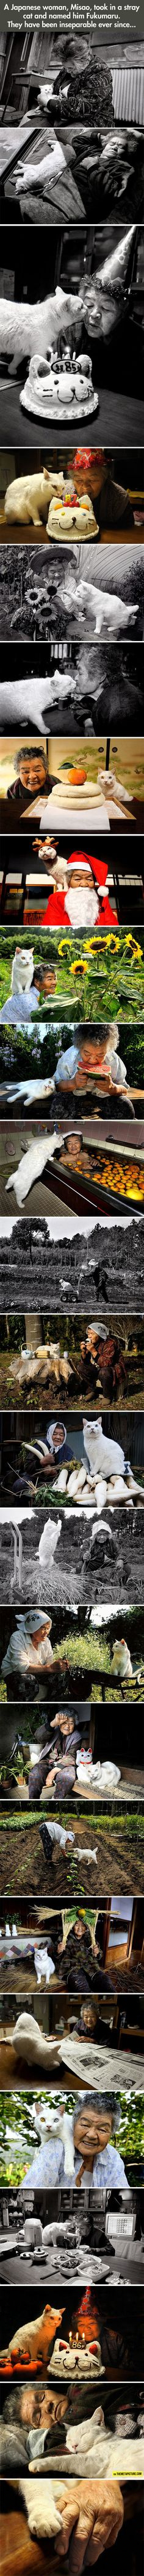 Japanese Woman And Her Kitty(I believe animals have the souls of those who left before us...the devotion this cat has for this woman could be a departed loved one has come back to be with her - km)